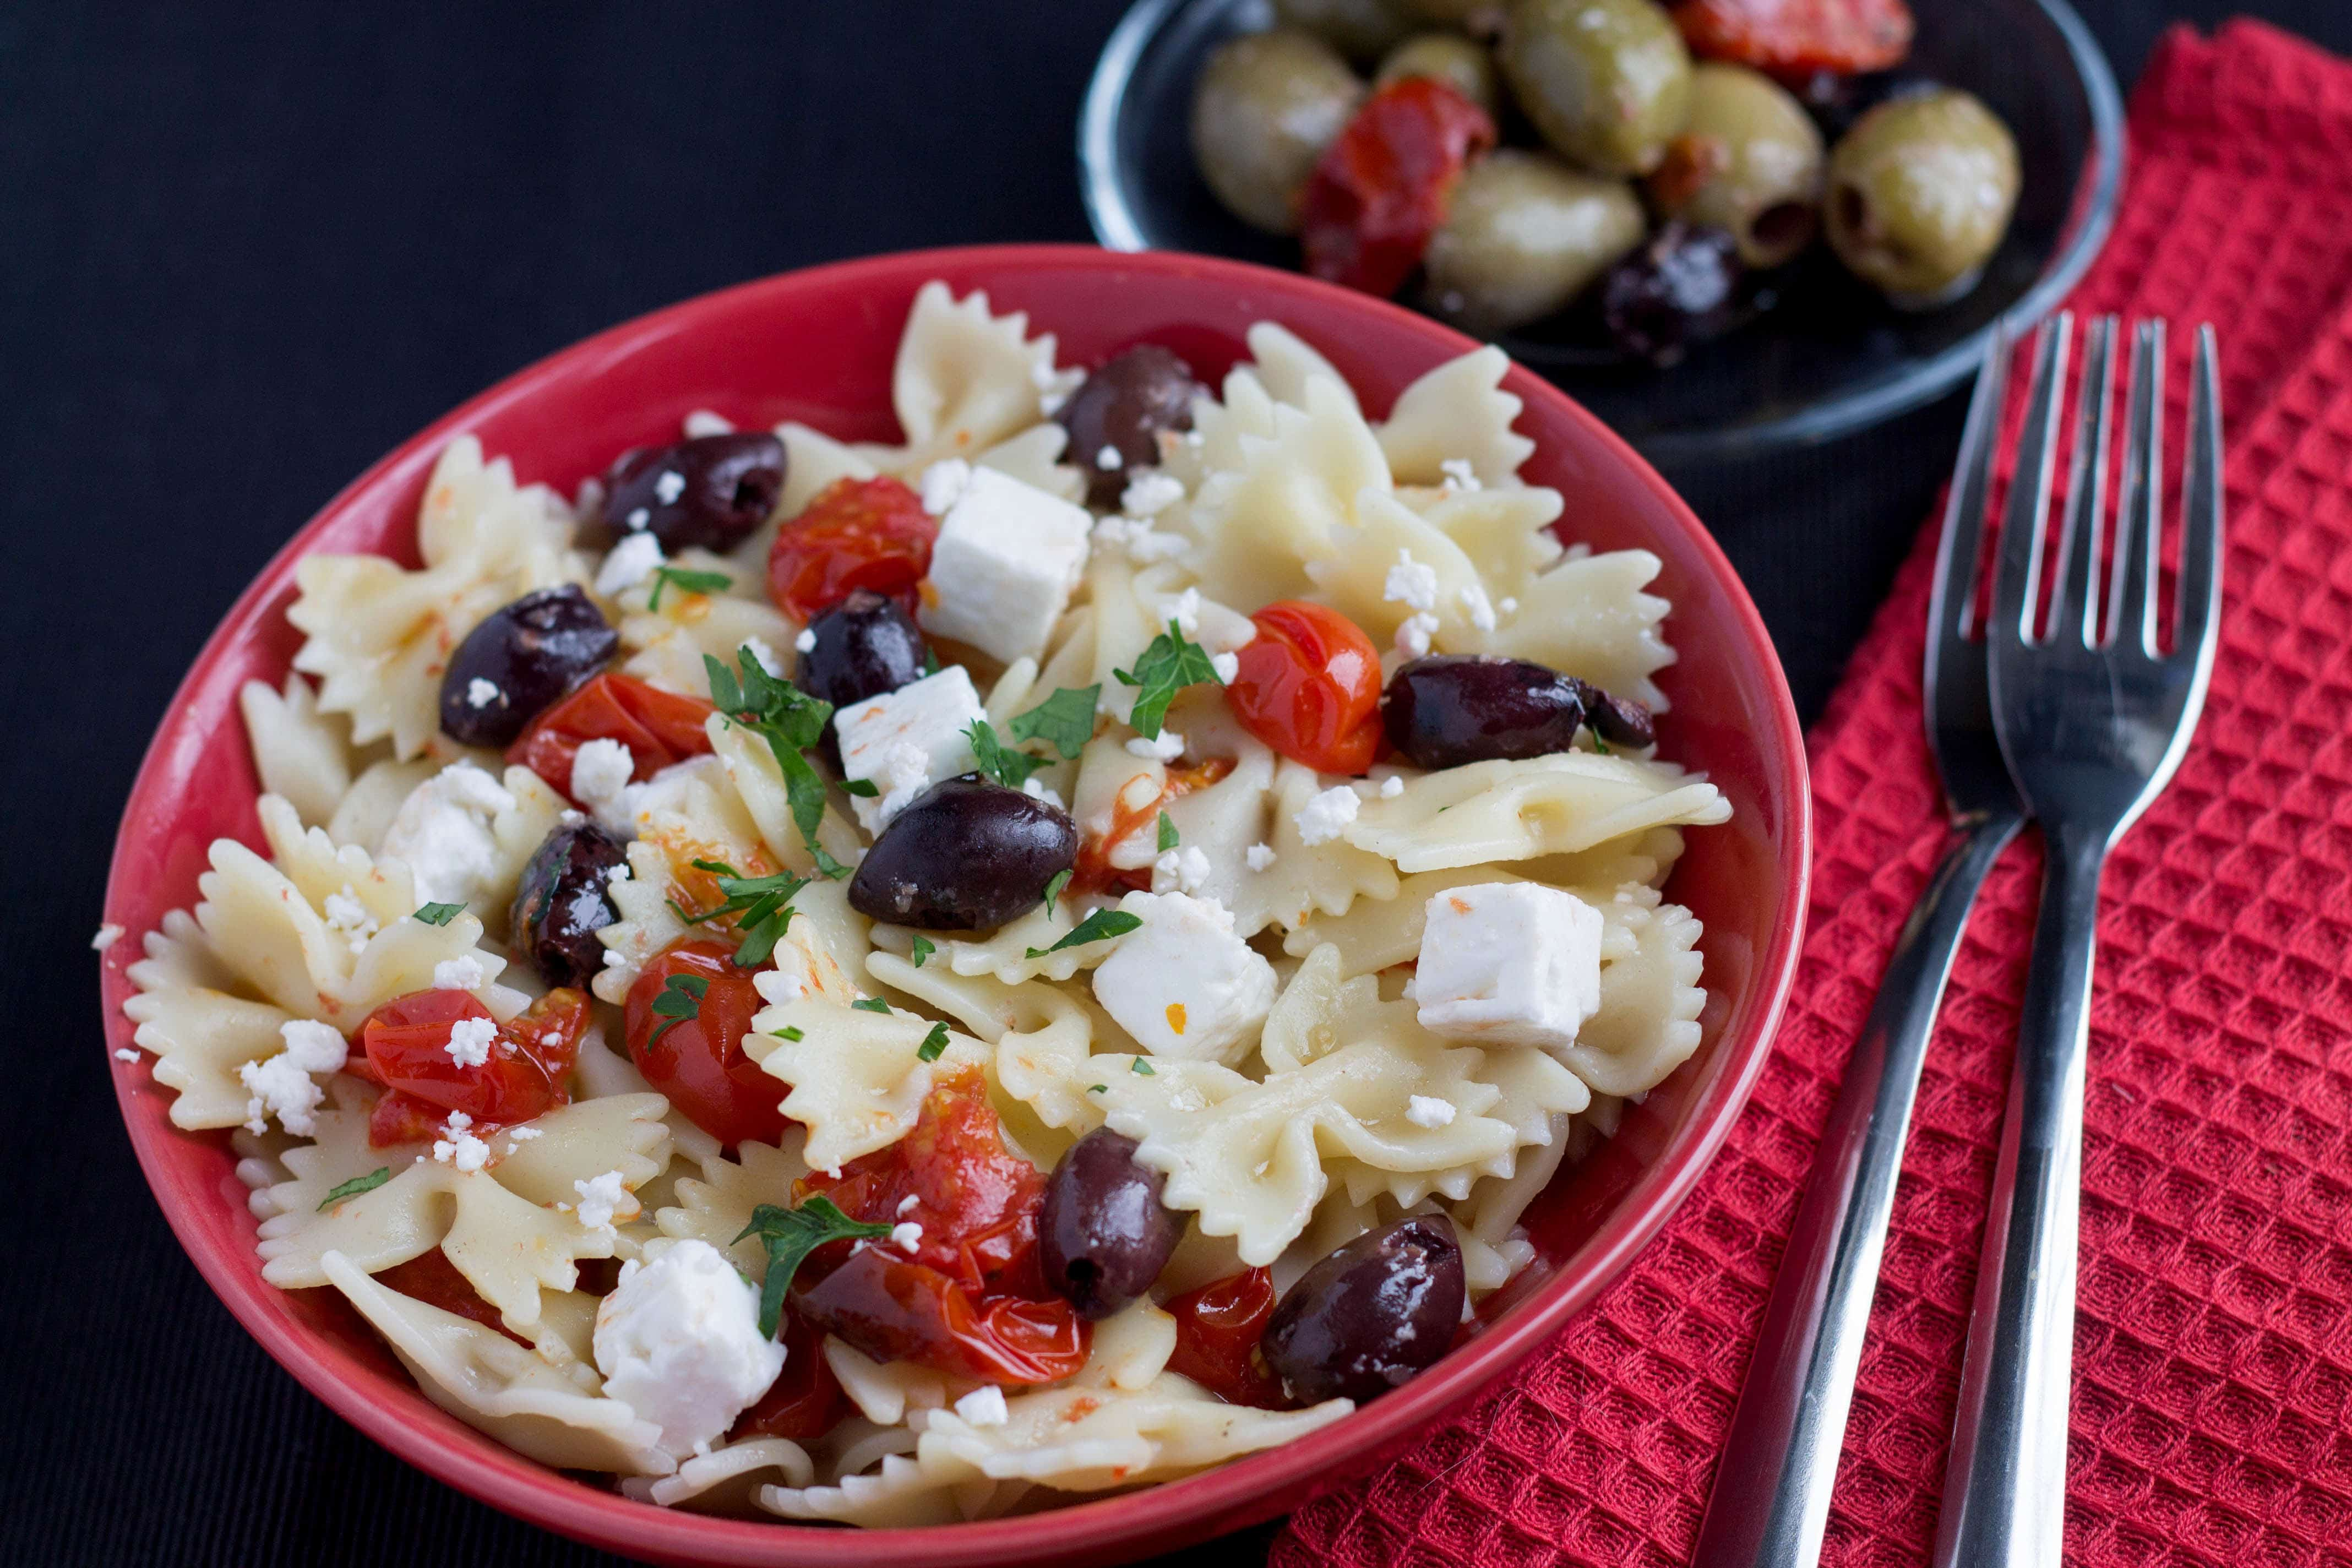 Quick & Easy Pasta with Tomatoes, Feta & Olives - This dish brings big flavor with sweet roasted tomatoes that are the perfect contrast to the saltiness of the feta & olives!